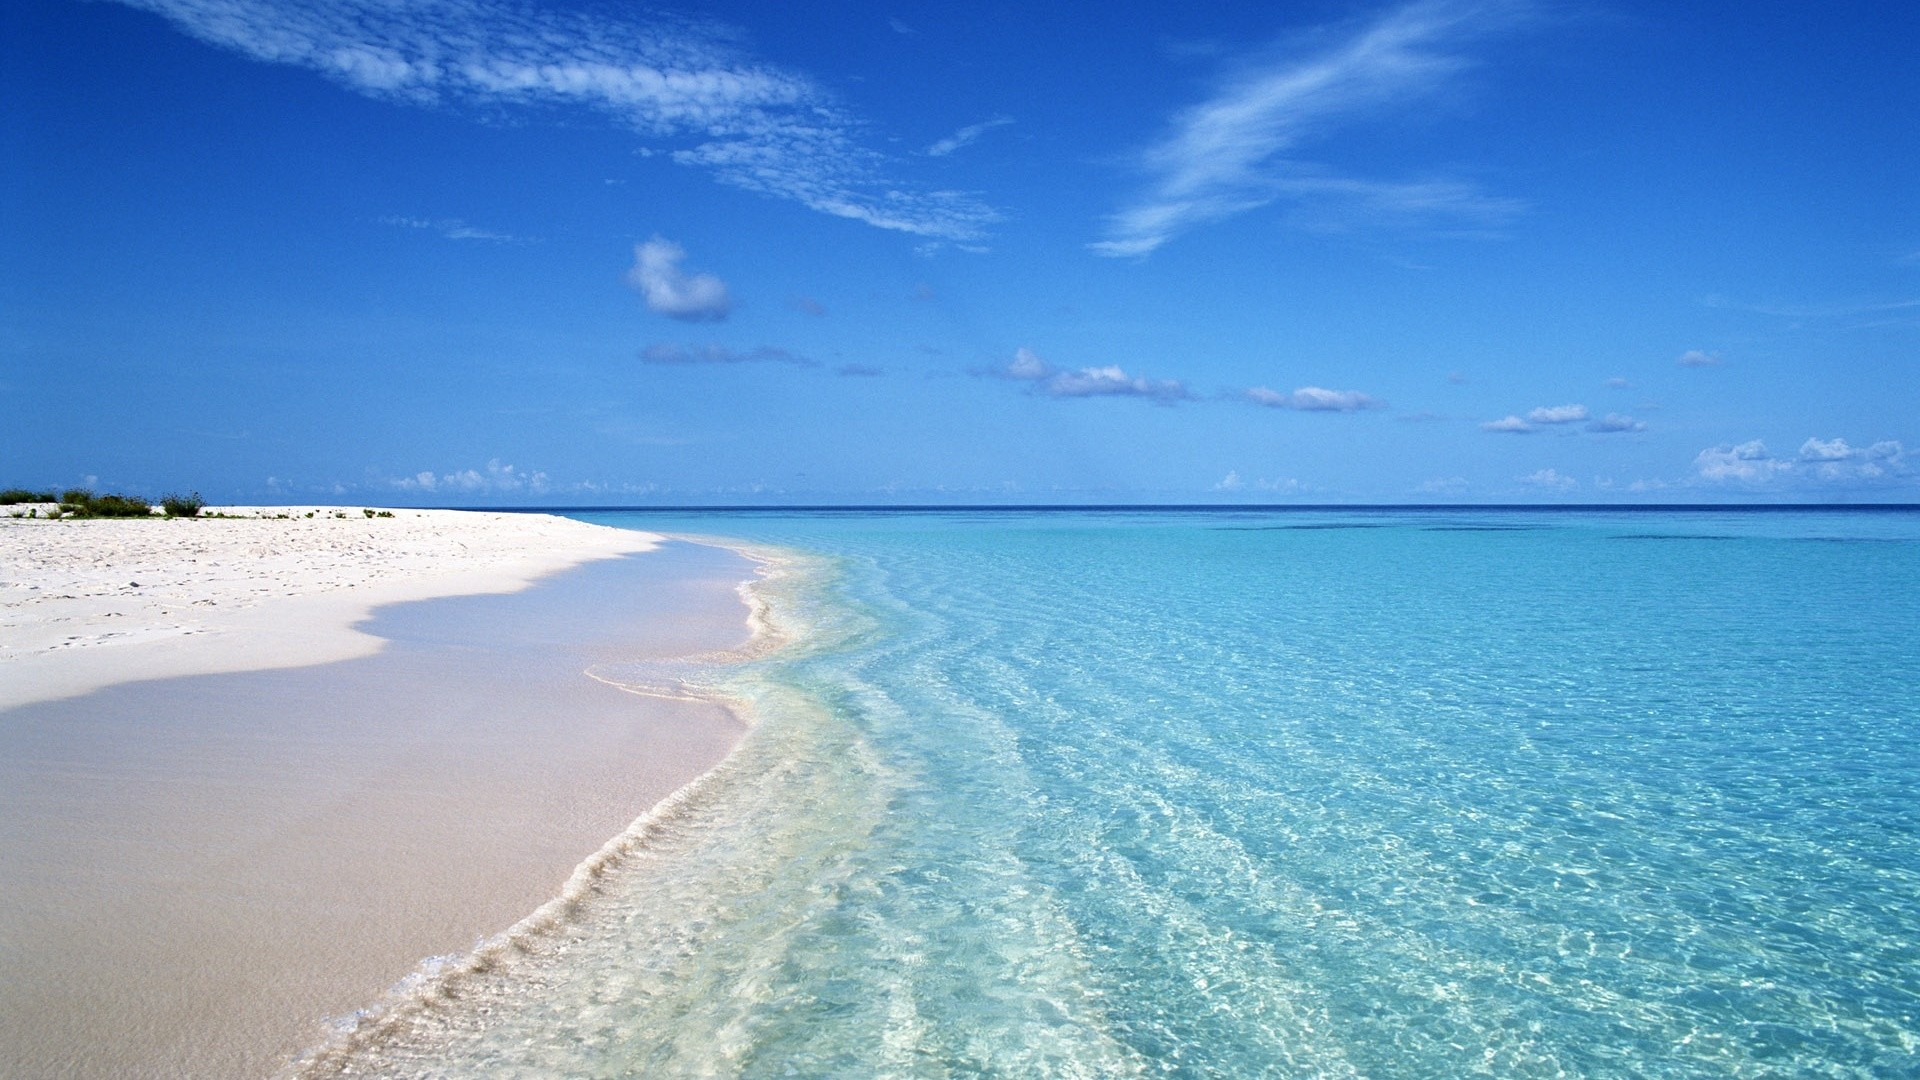 Sea White Sand Image